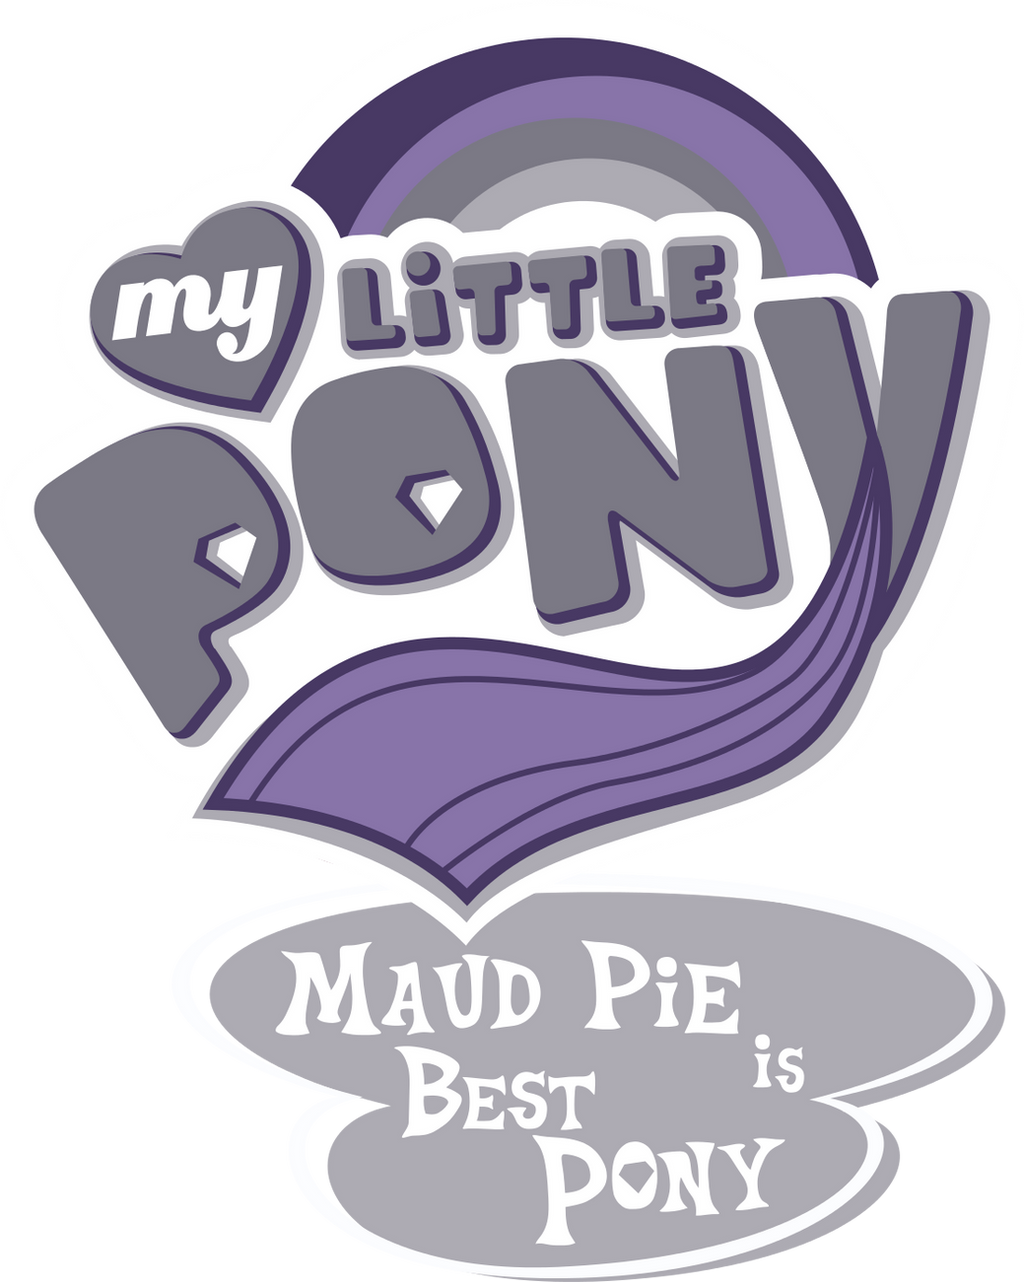 http://img14.deviantart.net/1463/i/2014/241/5/8/_old_work__maud_pie_is_best_pony_by_sparklerrose-d7x7wxy.png